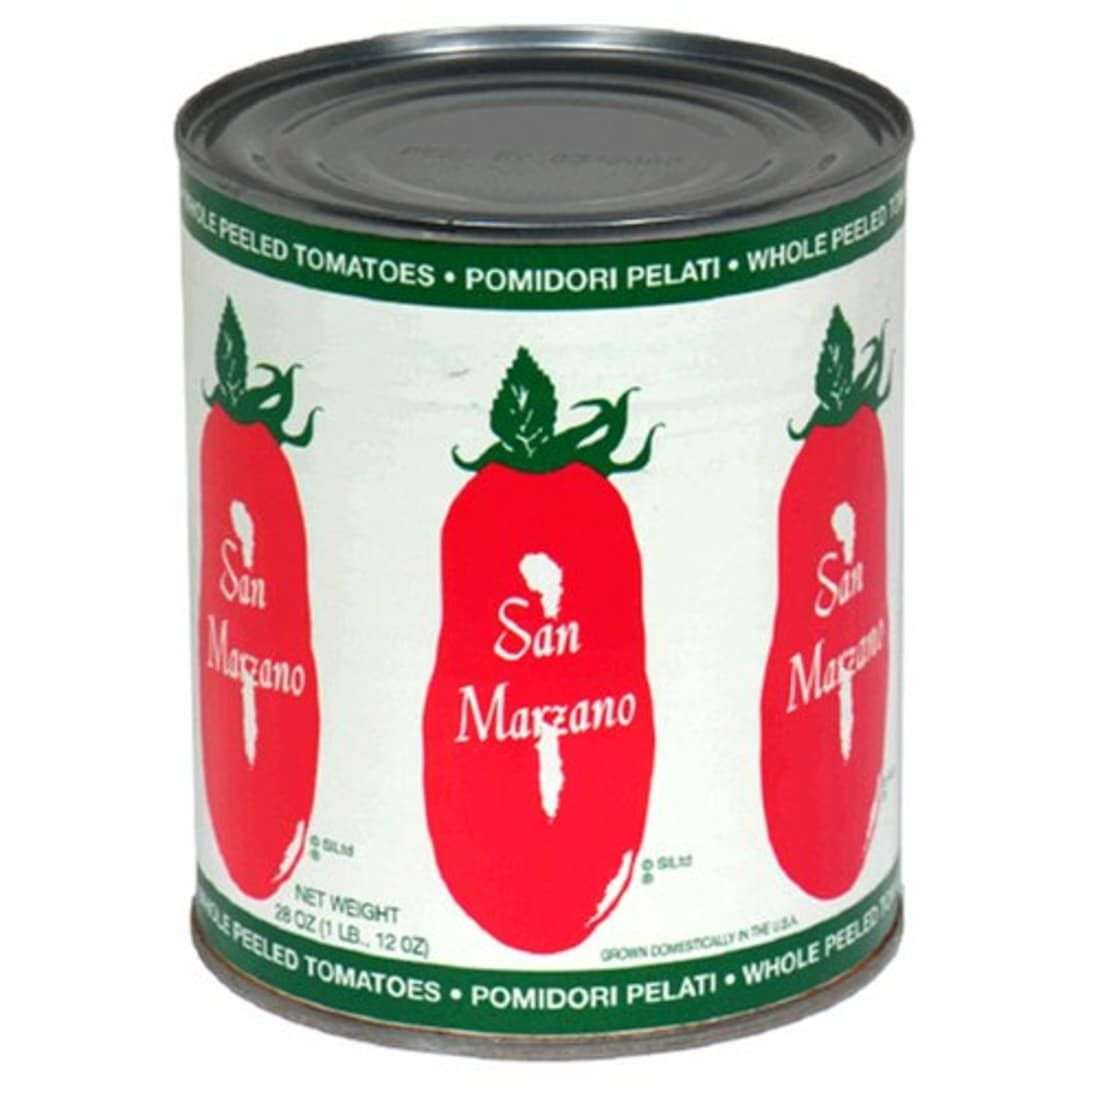 The 2 Canned Goods That Ina Garten Swears By In 2020 San Marzano Tomato Sauce Best Canned Tomatoes How To Can Tomatoes